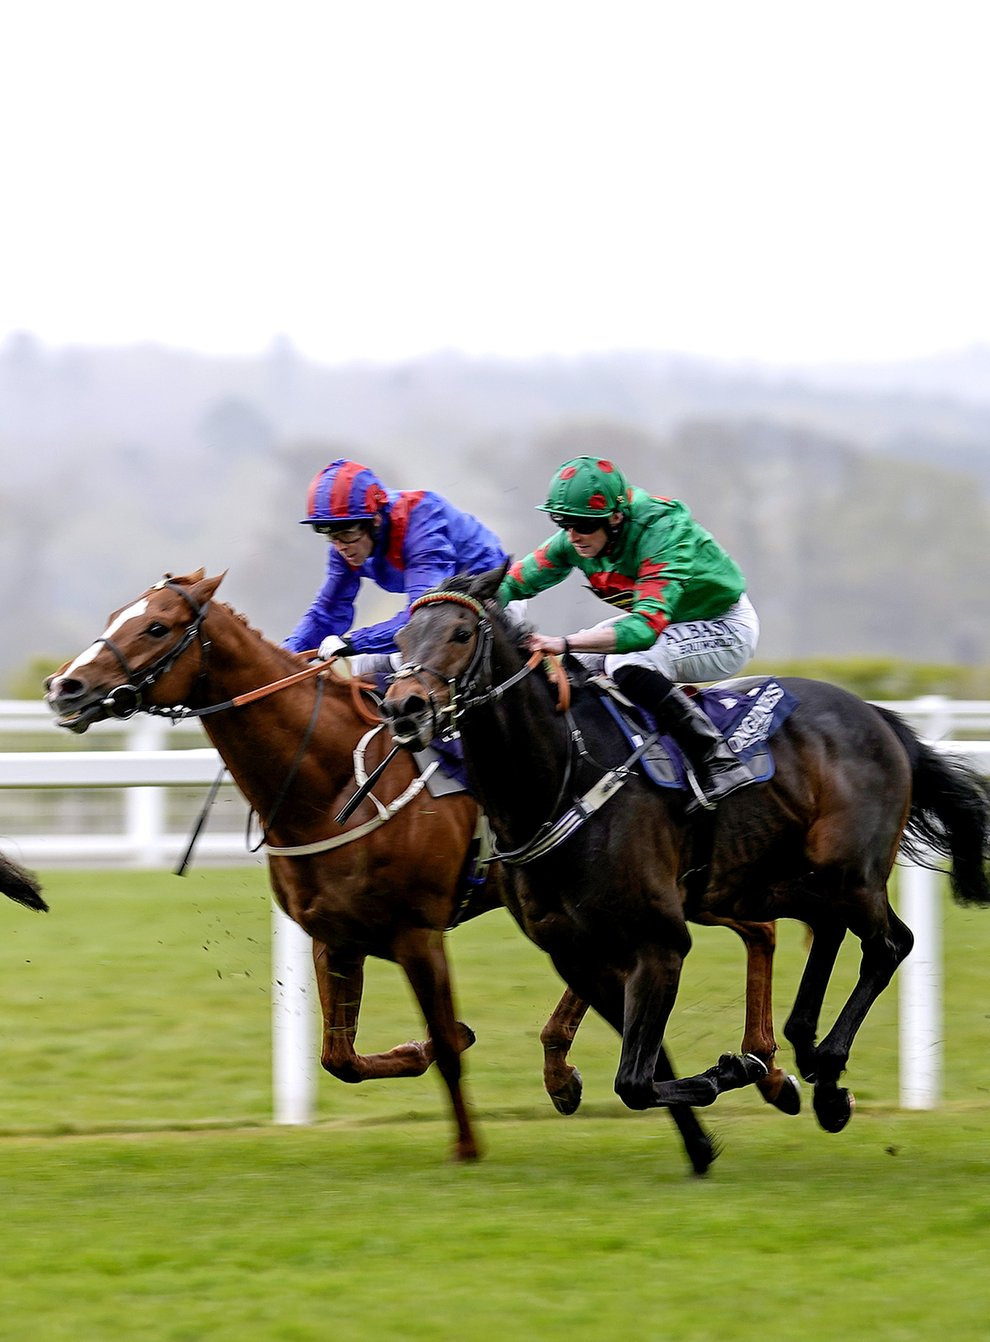 Stradivarius on the way to victory at Ascot